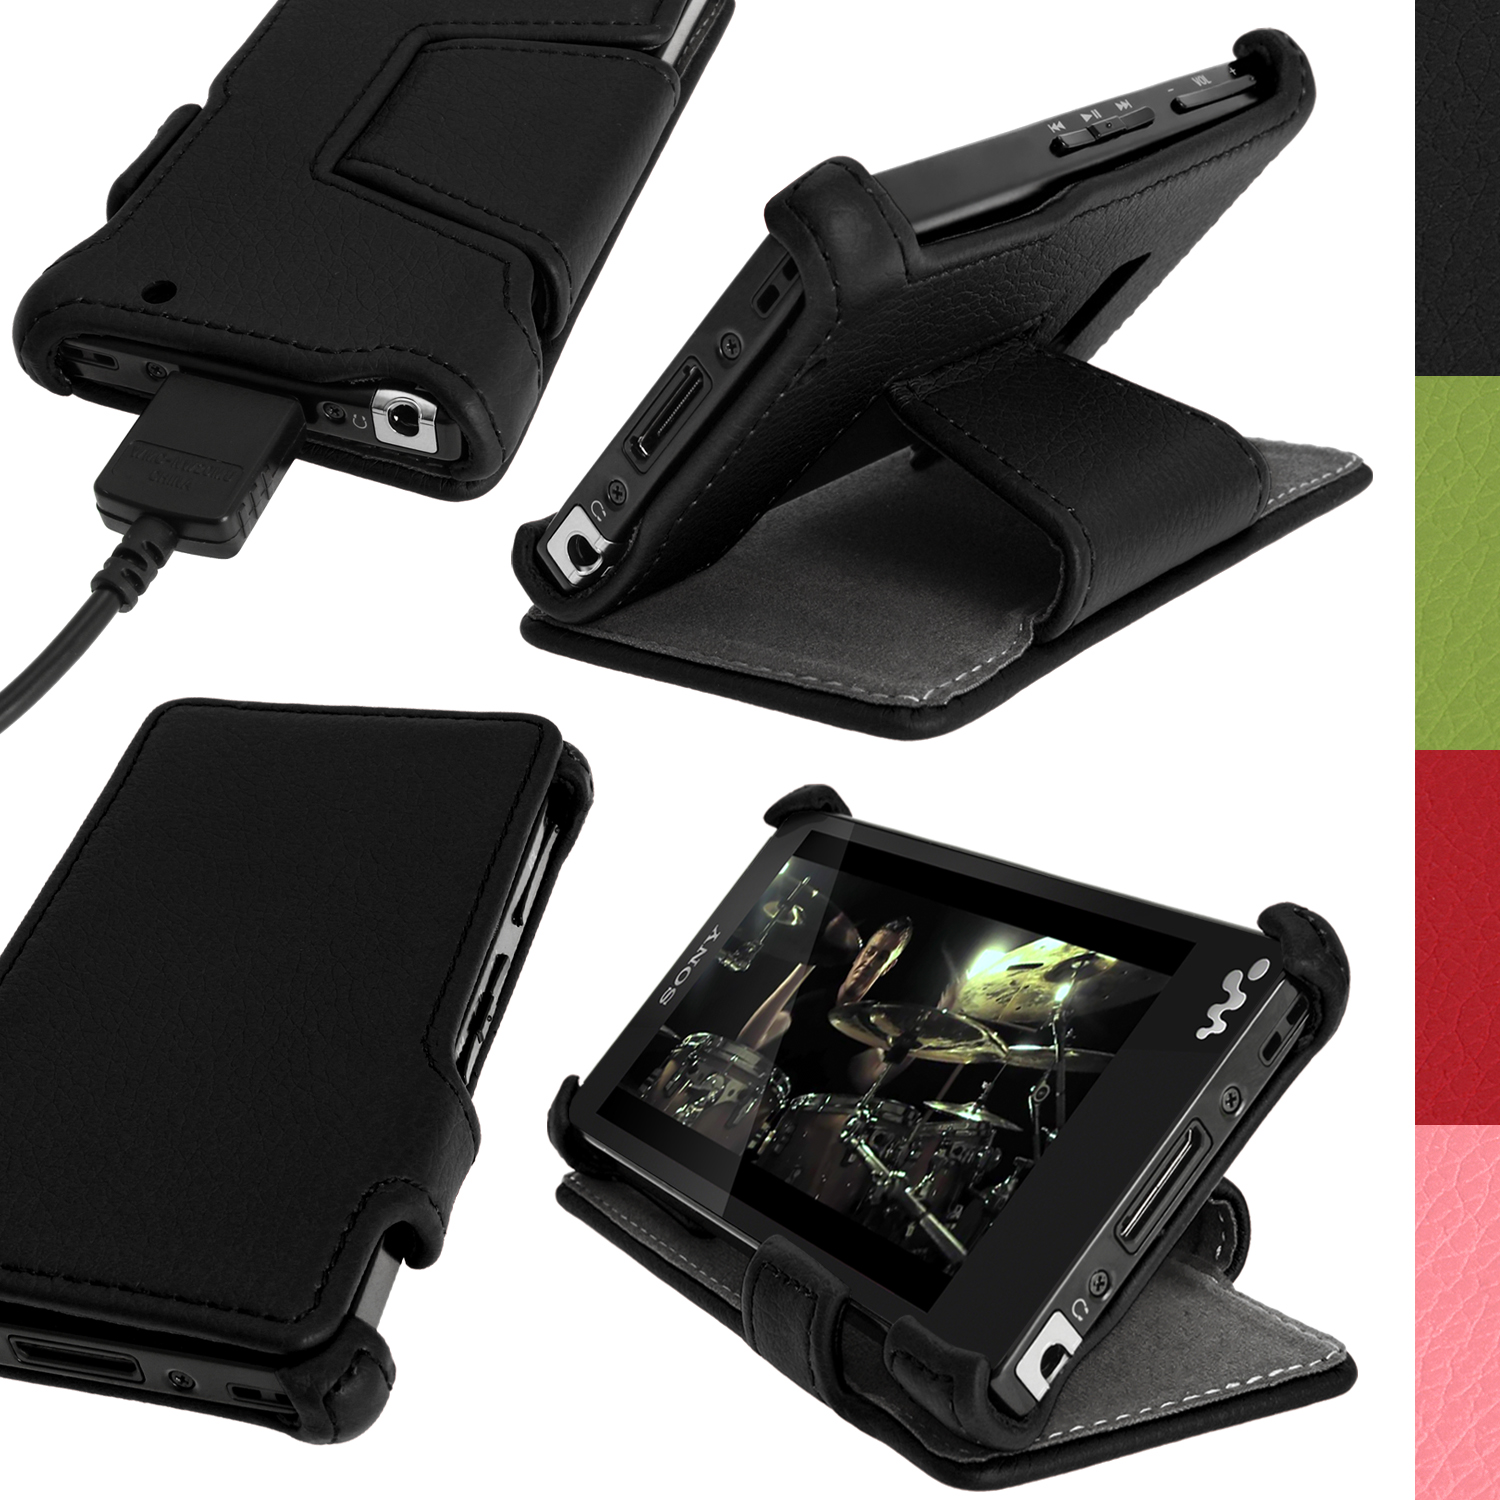 iGadgitz PU Leather Flip Case for Sony Walkman NWZ-F886-F887 with Viewing Stand + Screen Protector (various colours)